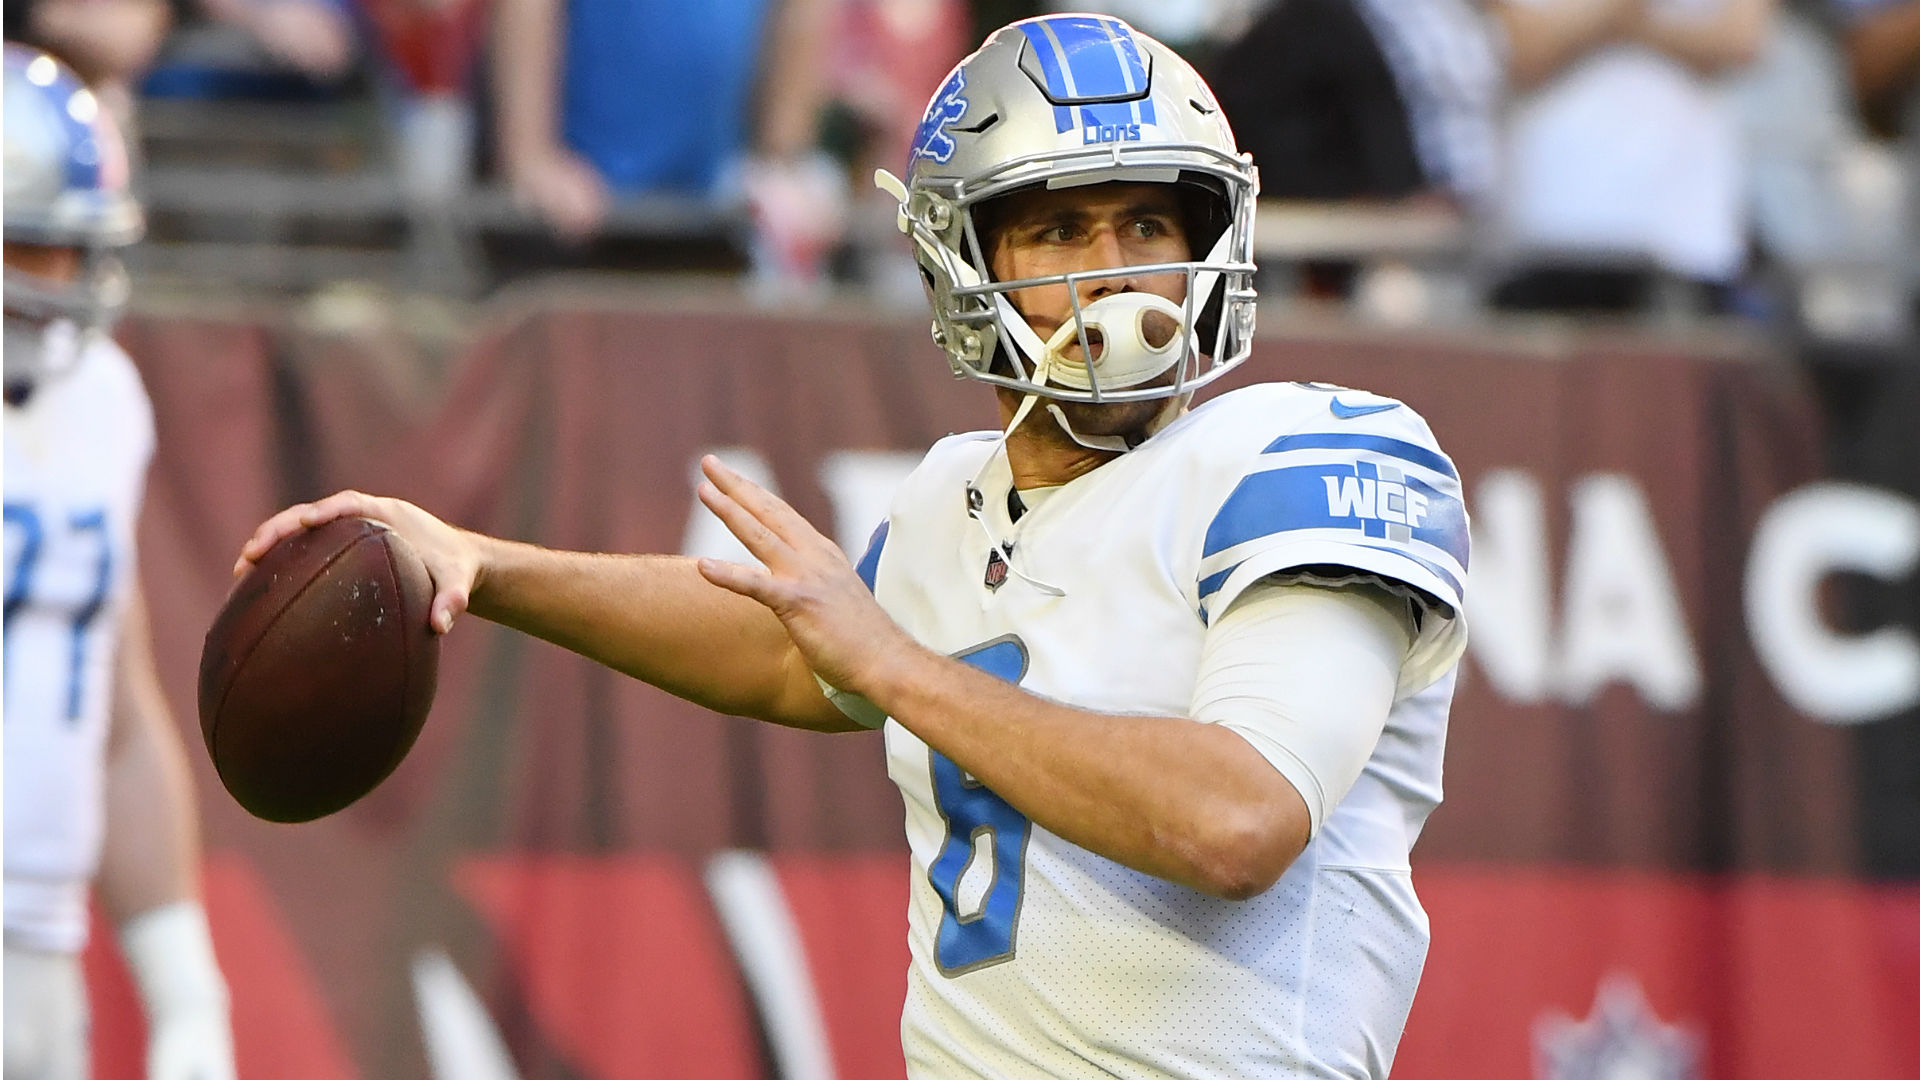 NFL free agency rumors: Colts continue search for backup quarterback after Andrew Luck's retirement